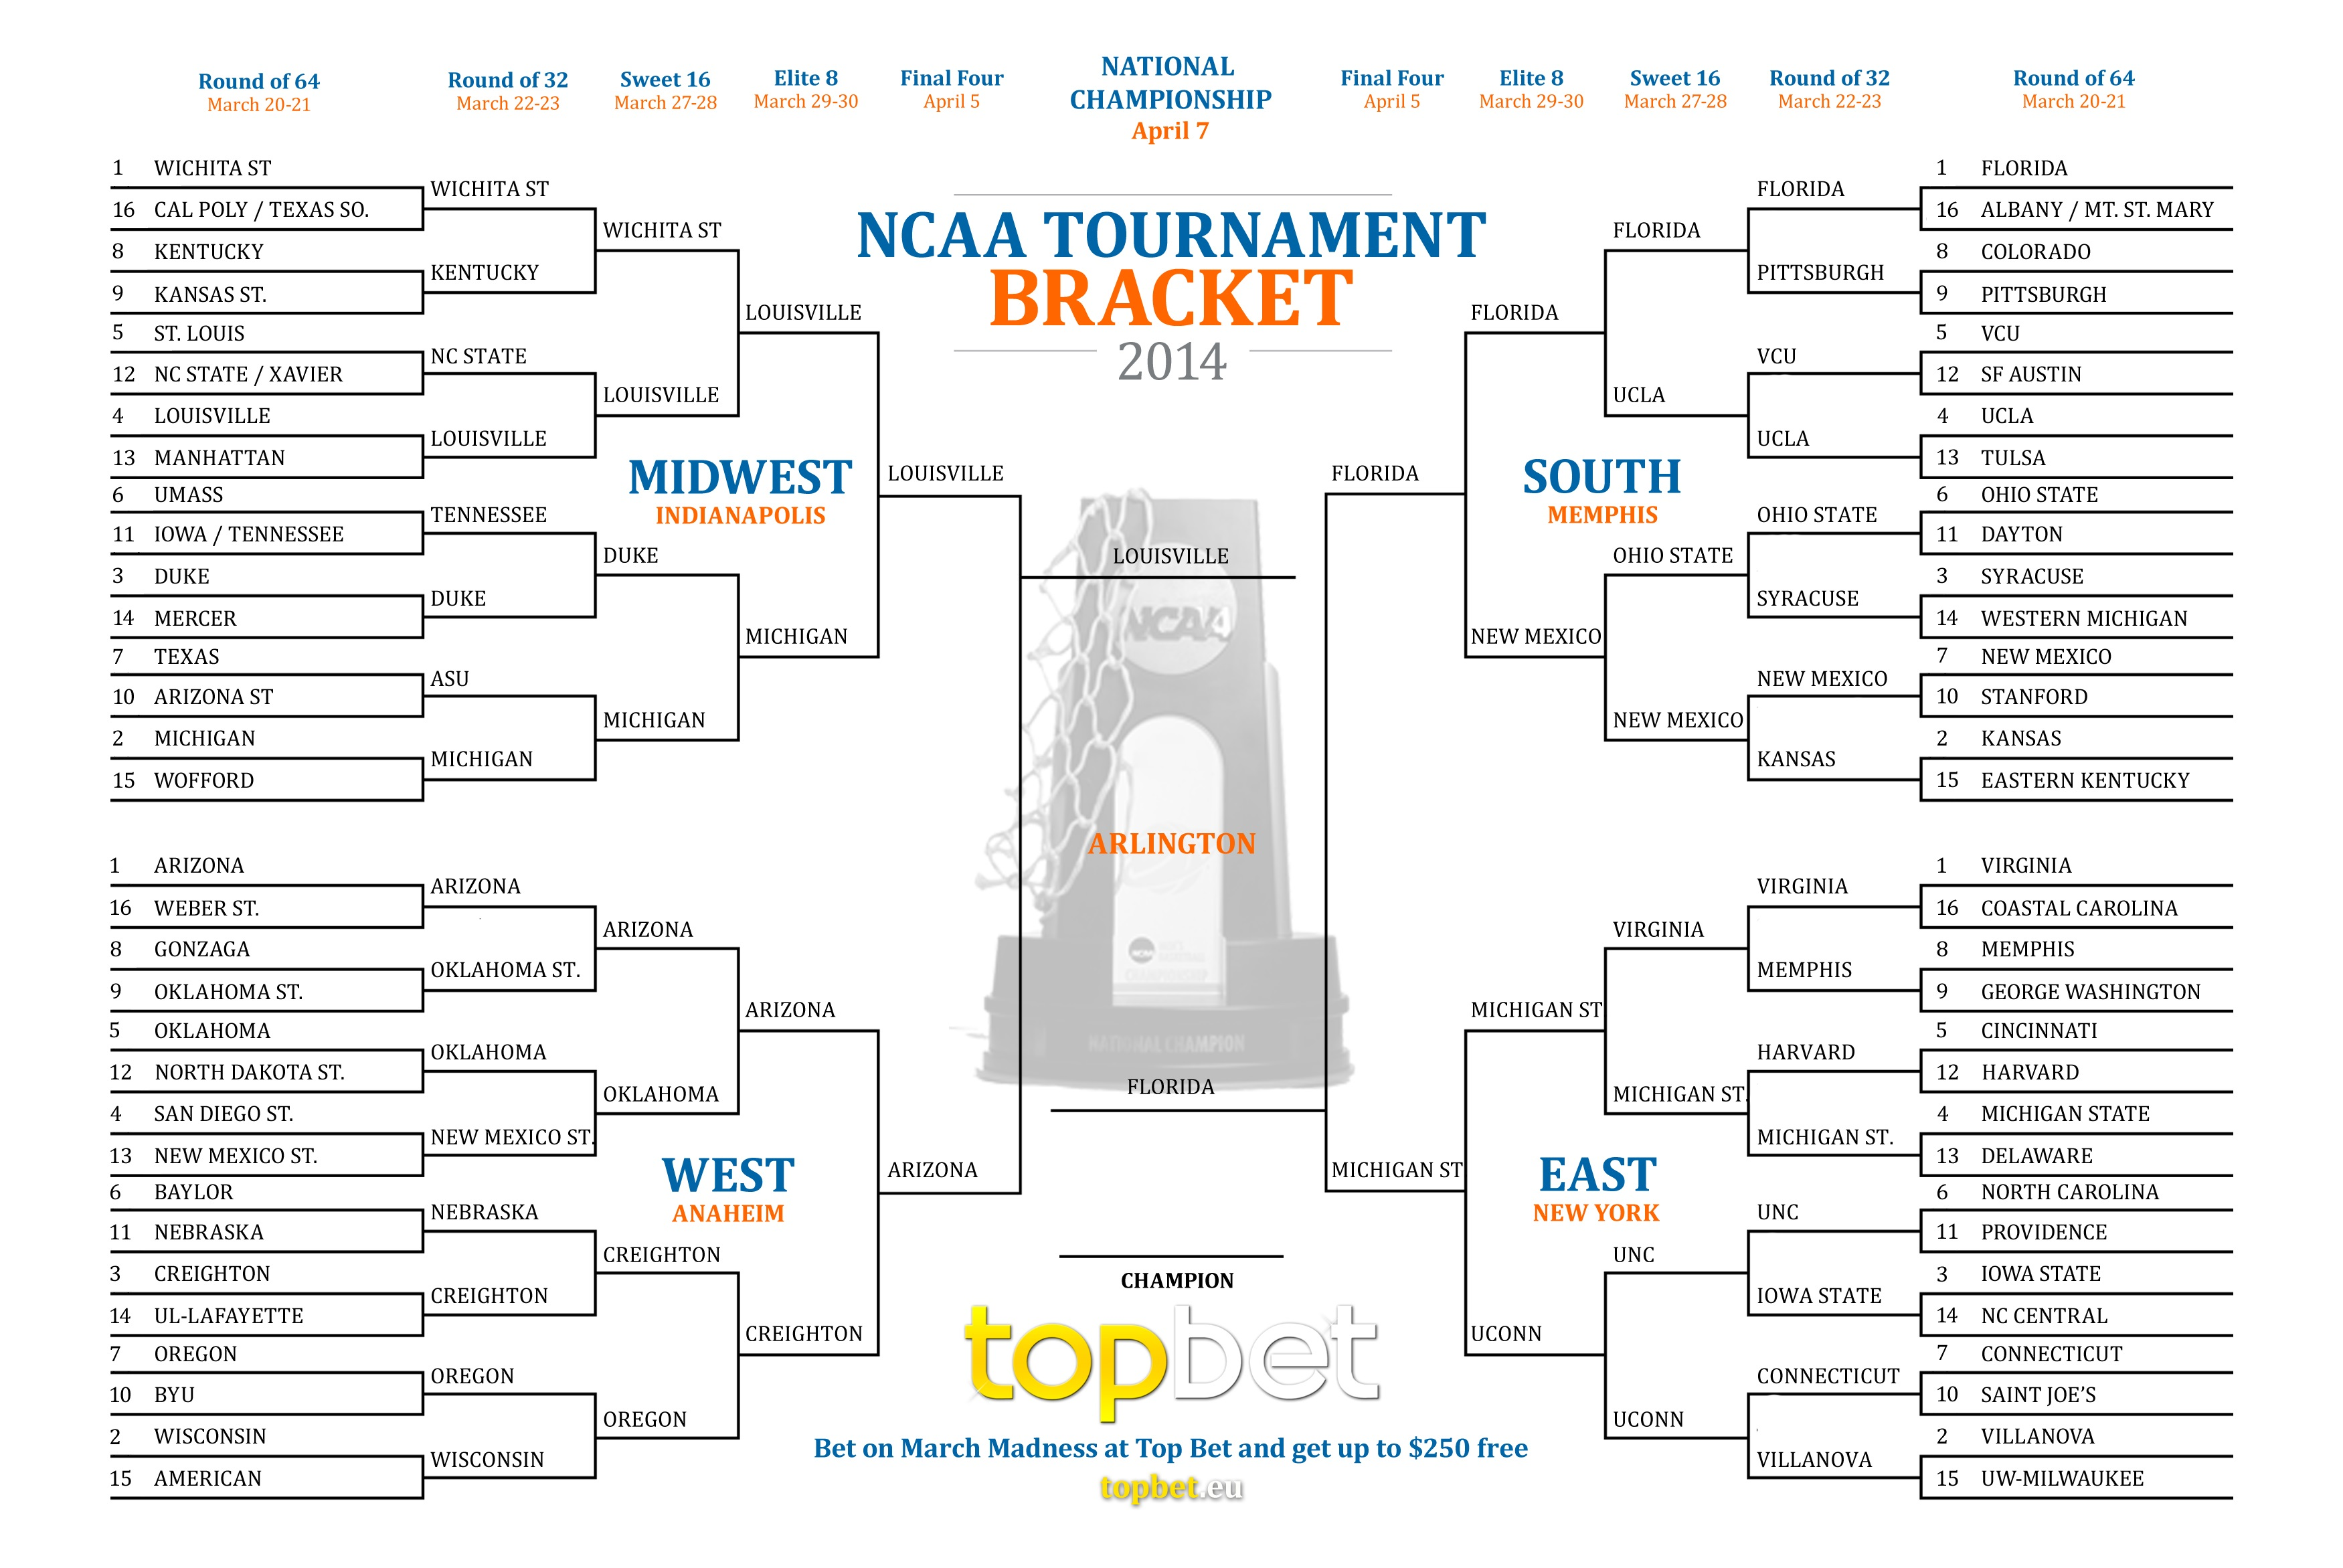 2014 March Madness Bracket - Complete Picks, Predictions and Analysis